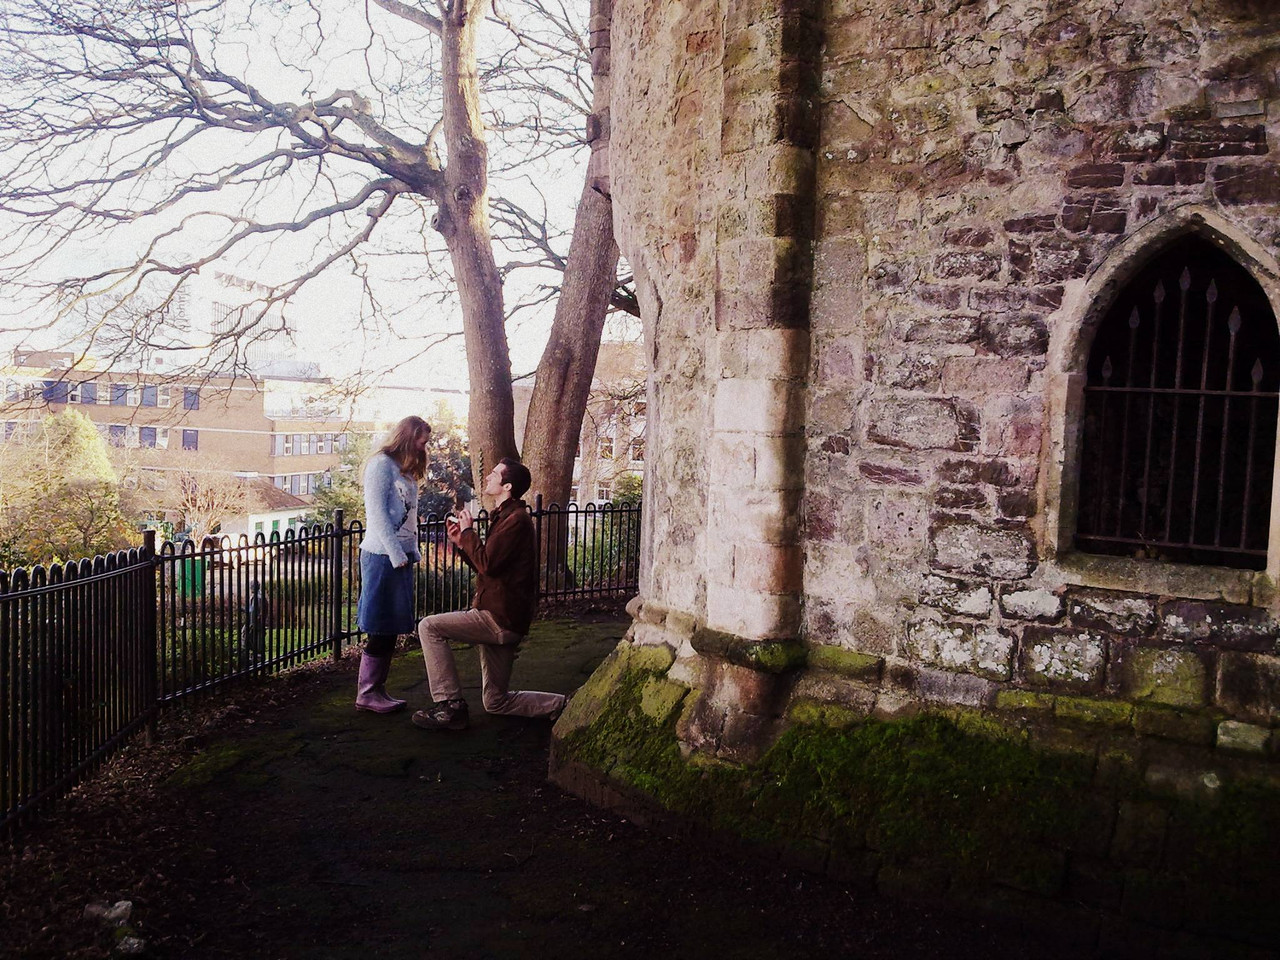 A man kneels on one knee and proposes to a girl at Rougemont Castle in Exeter, England